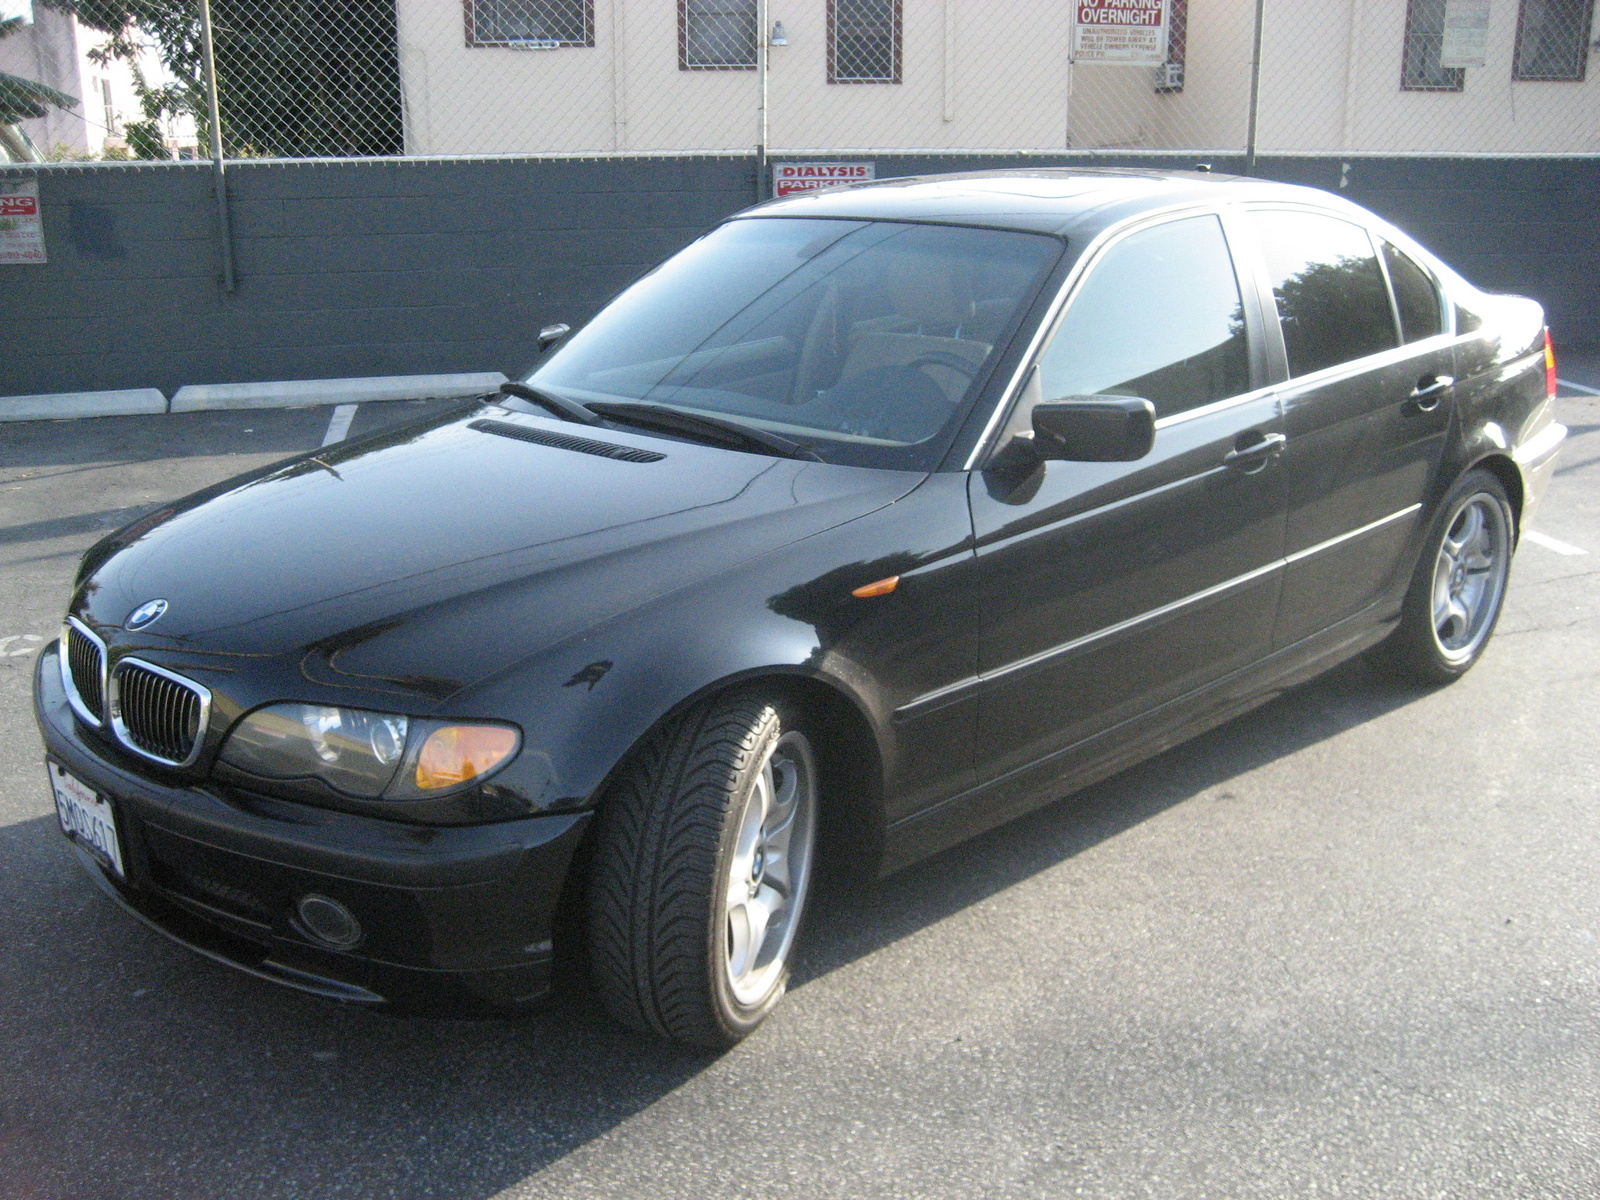 BMW 3 series 330xd 2005 photo - 9